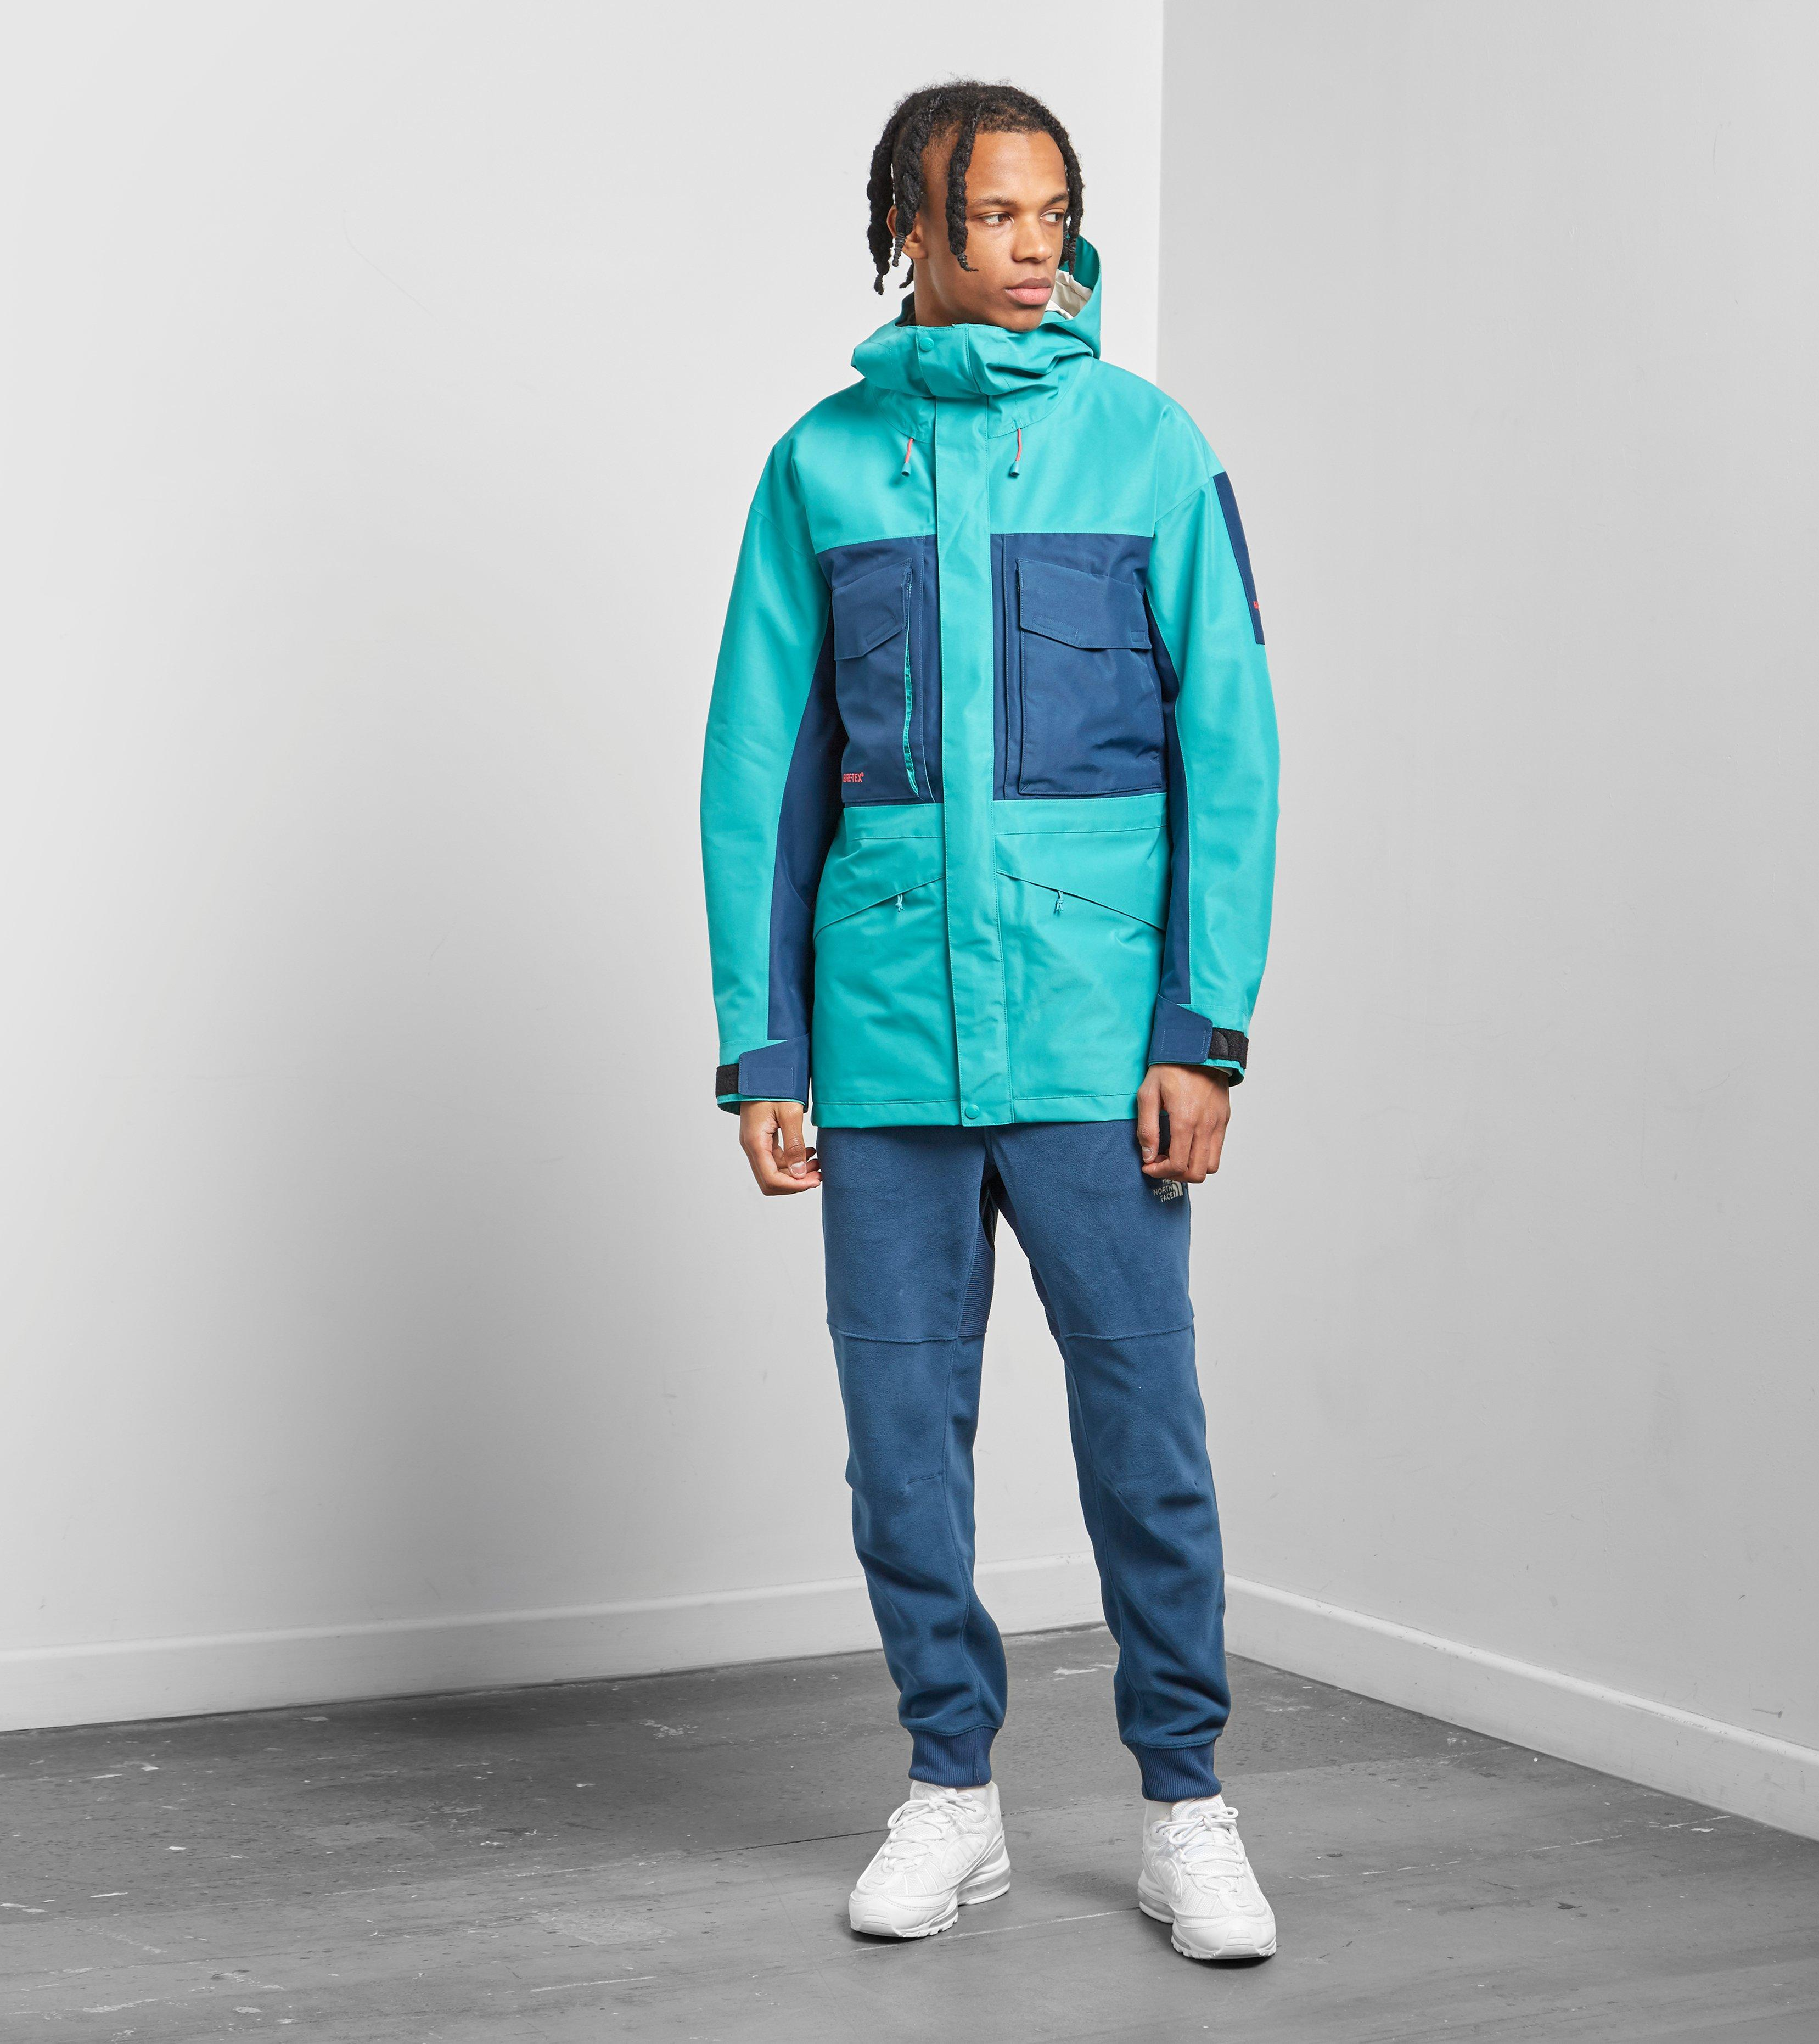 3854cef7488b Lyst - The North Face Fantasy Ridge Gore-tex Jacket in Blue for Men